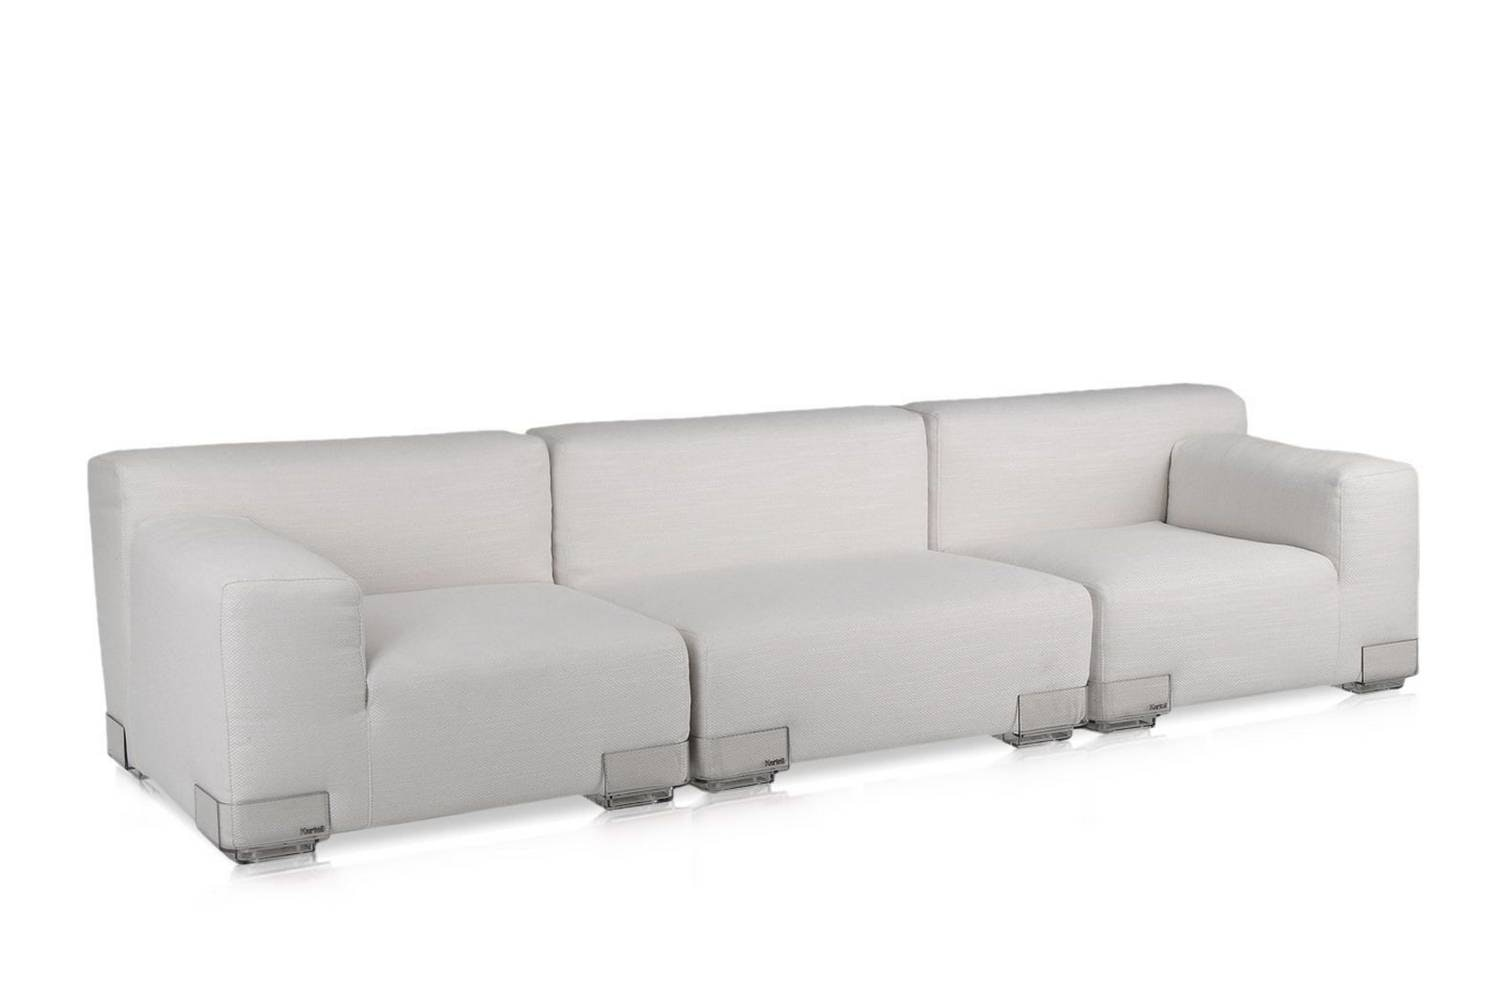 Plastics Duo 3 Seat Sofa by Piero Lissoni for Kartell